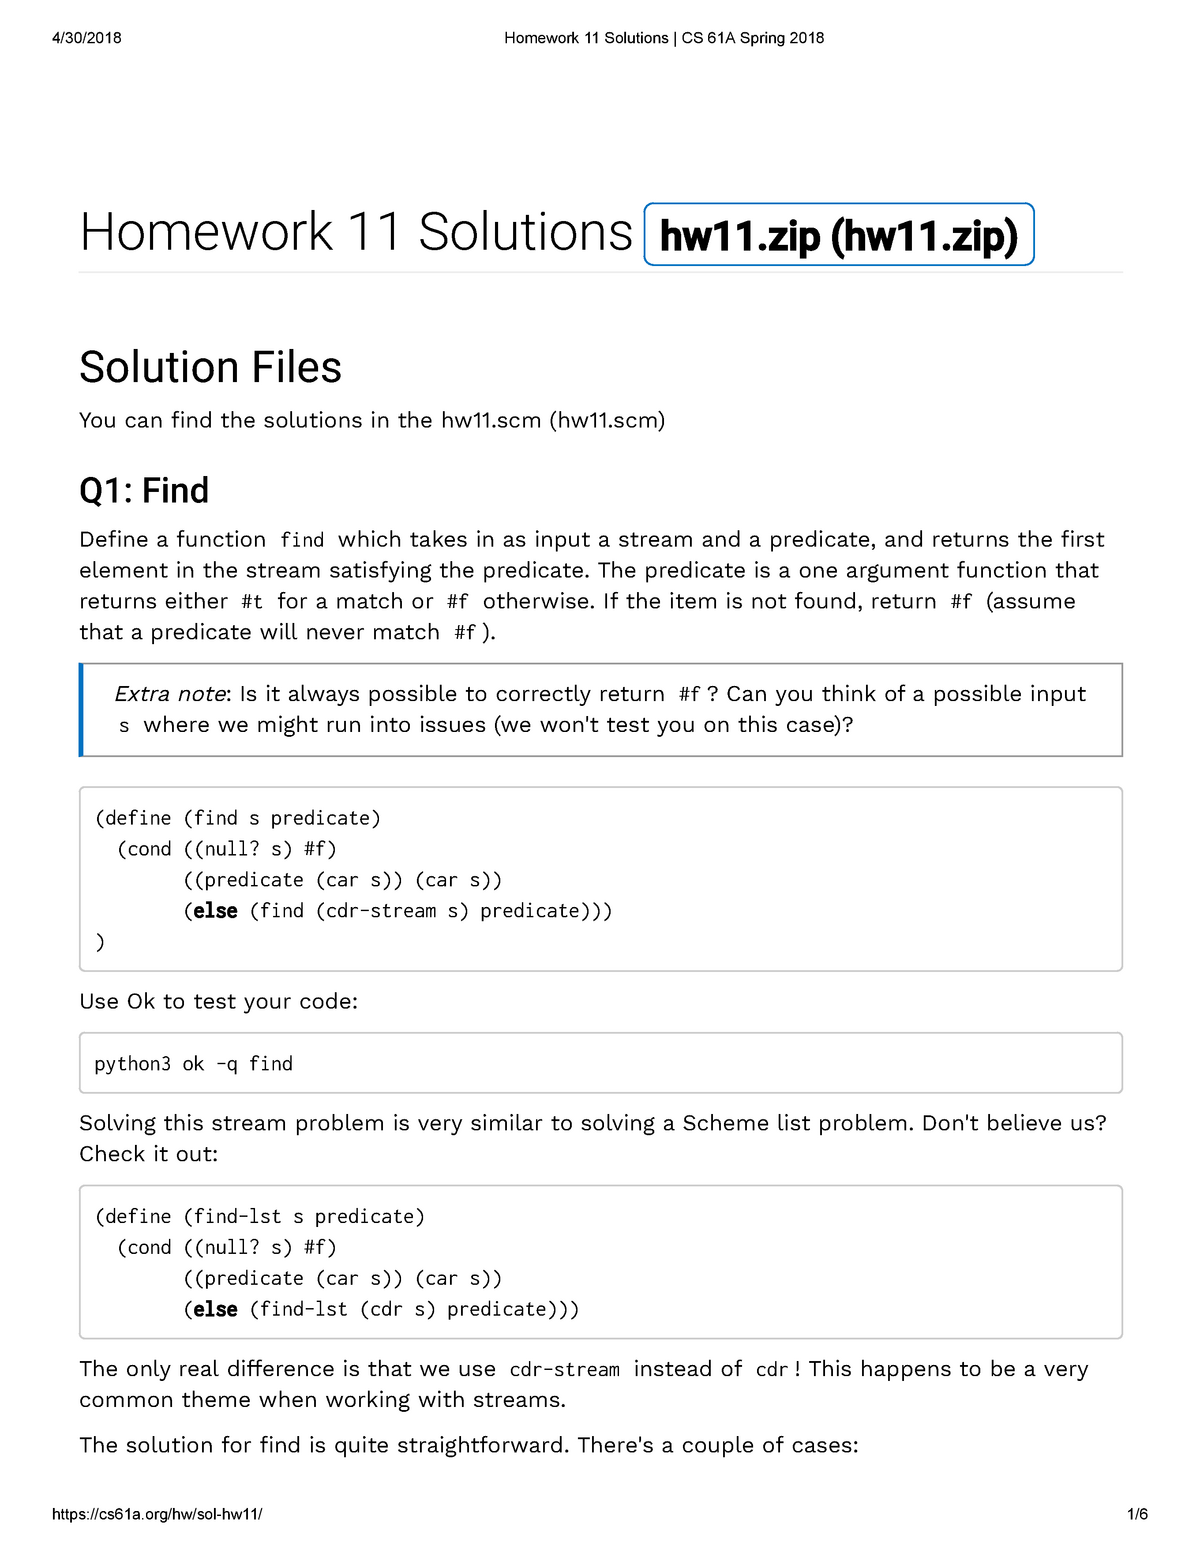 Homework 11 Solutions CS 61A Spring 2018 - COMPSCI 61A: The